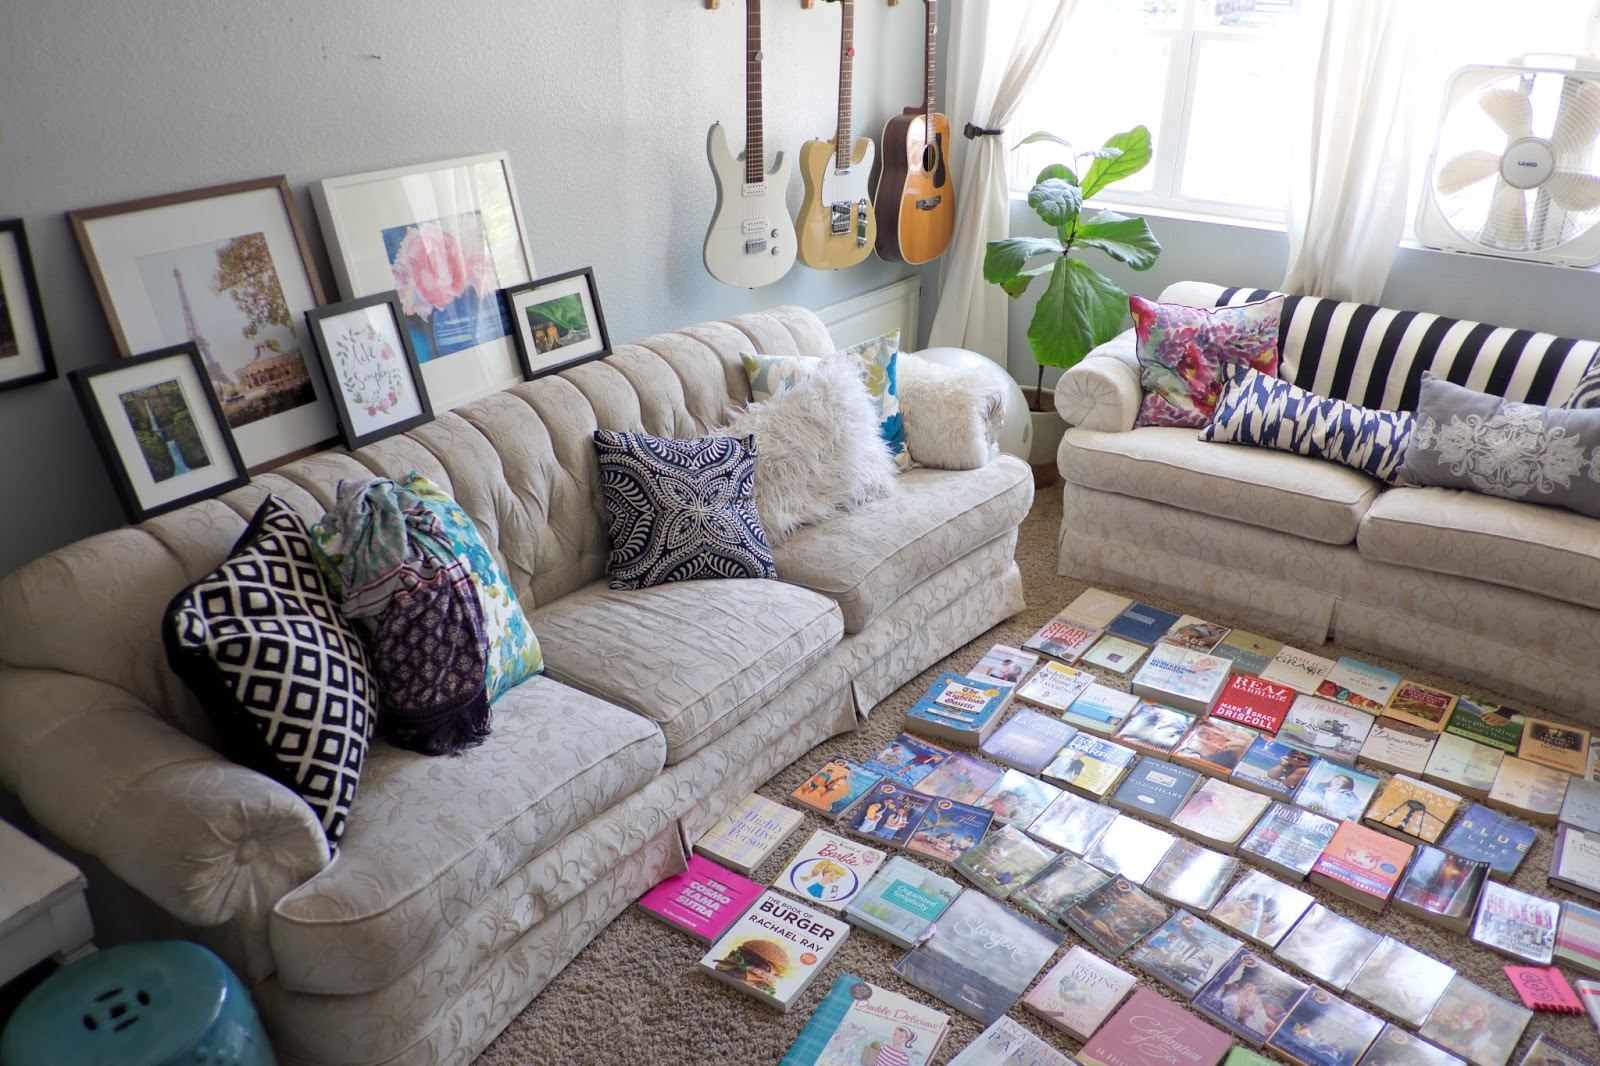 The Life Changing Magic Of Tidying Domestic Fashionista The Life Changing Magic Of Tidying Up The